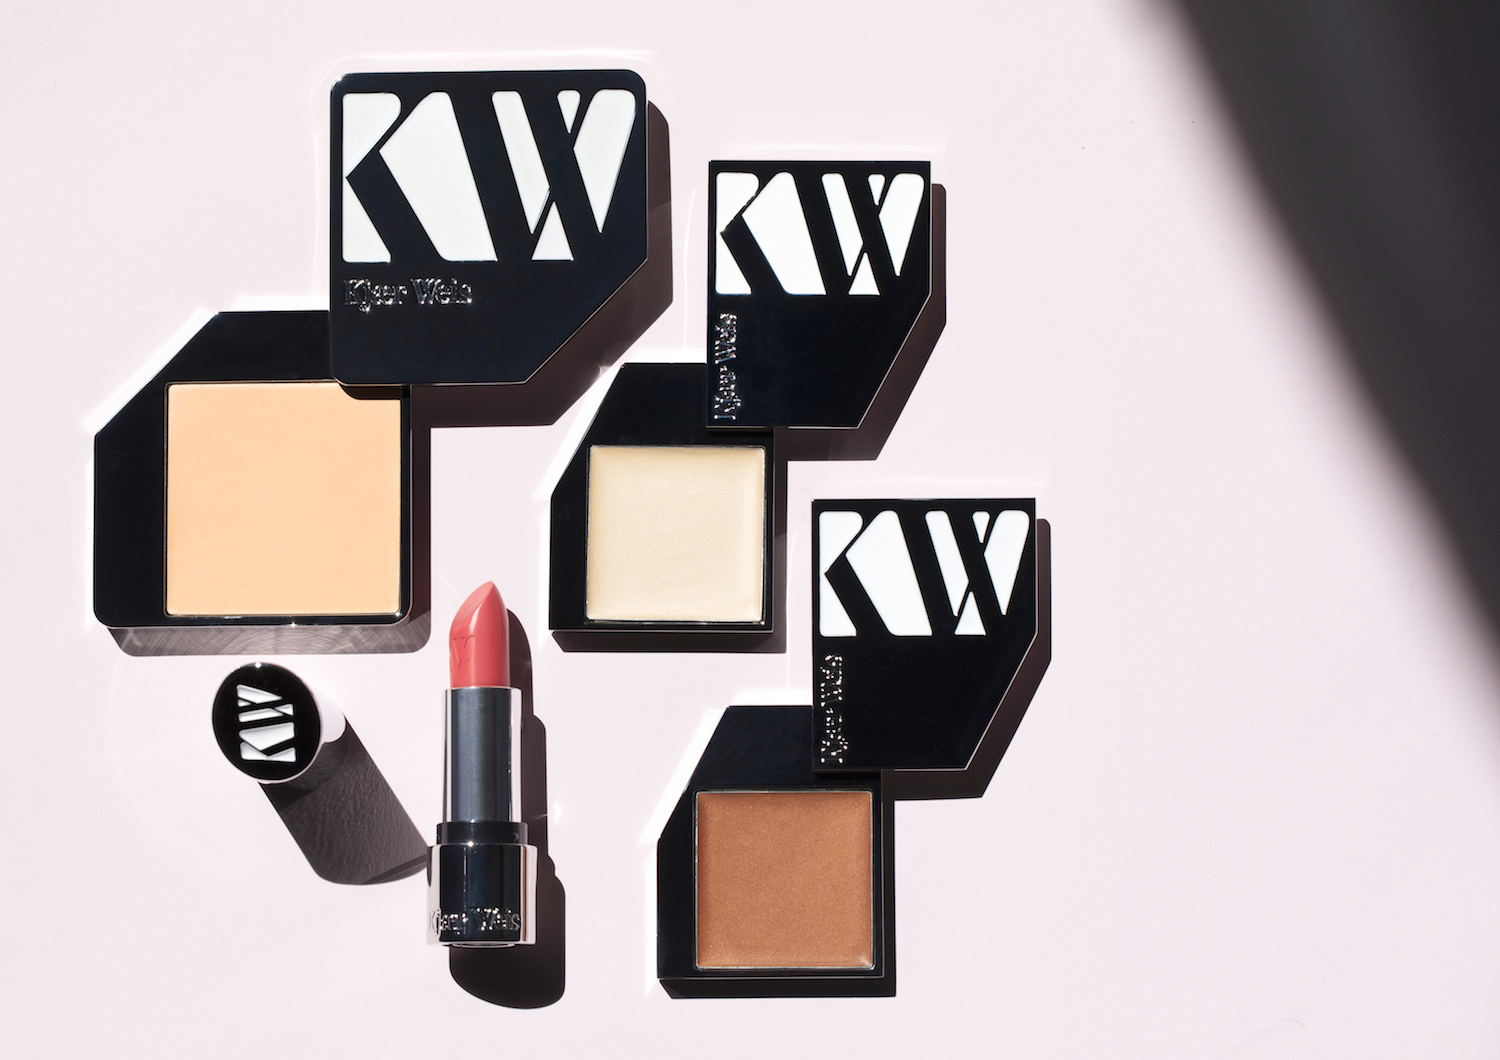 Kjaer Weis Luxury Organic Makeup sold at INTERLOCKS